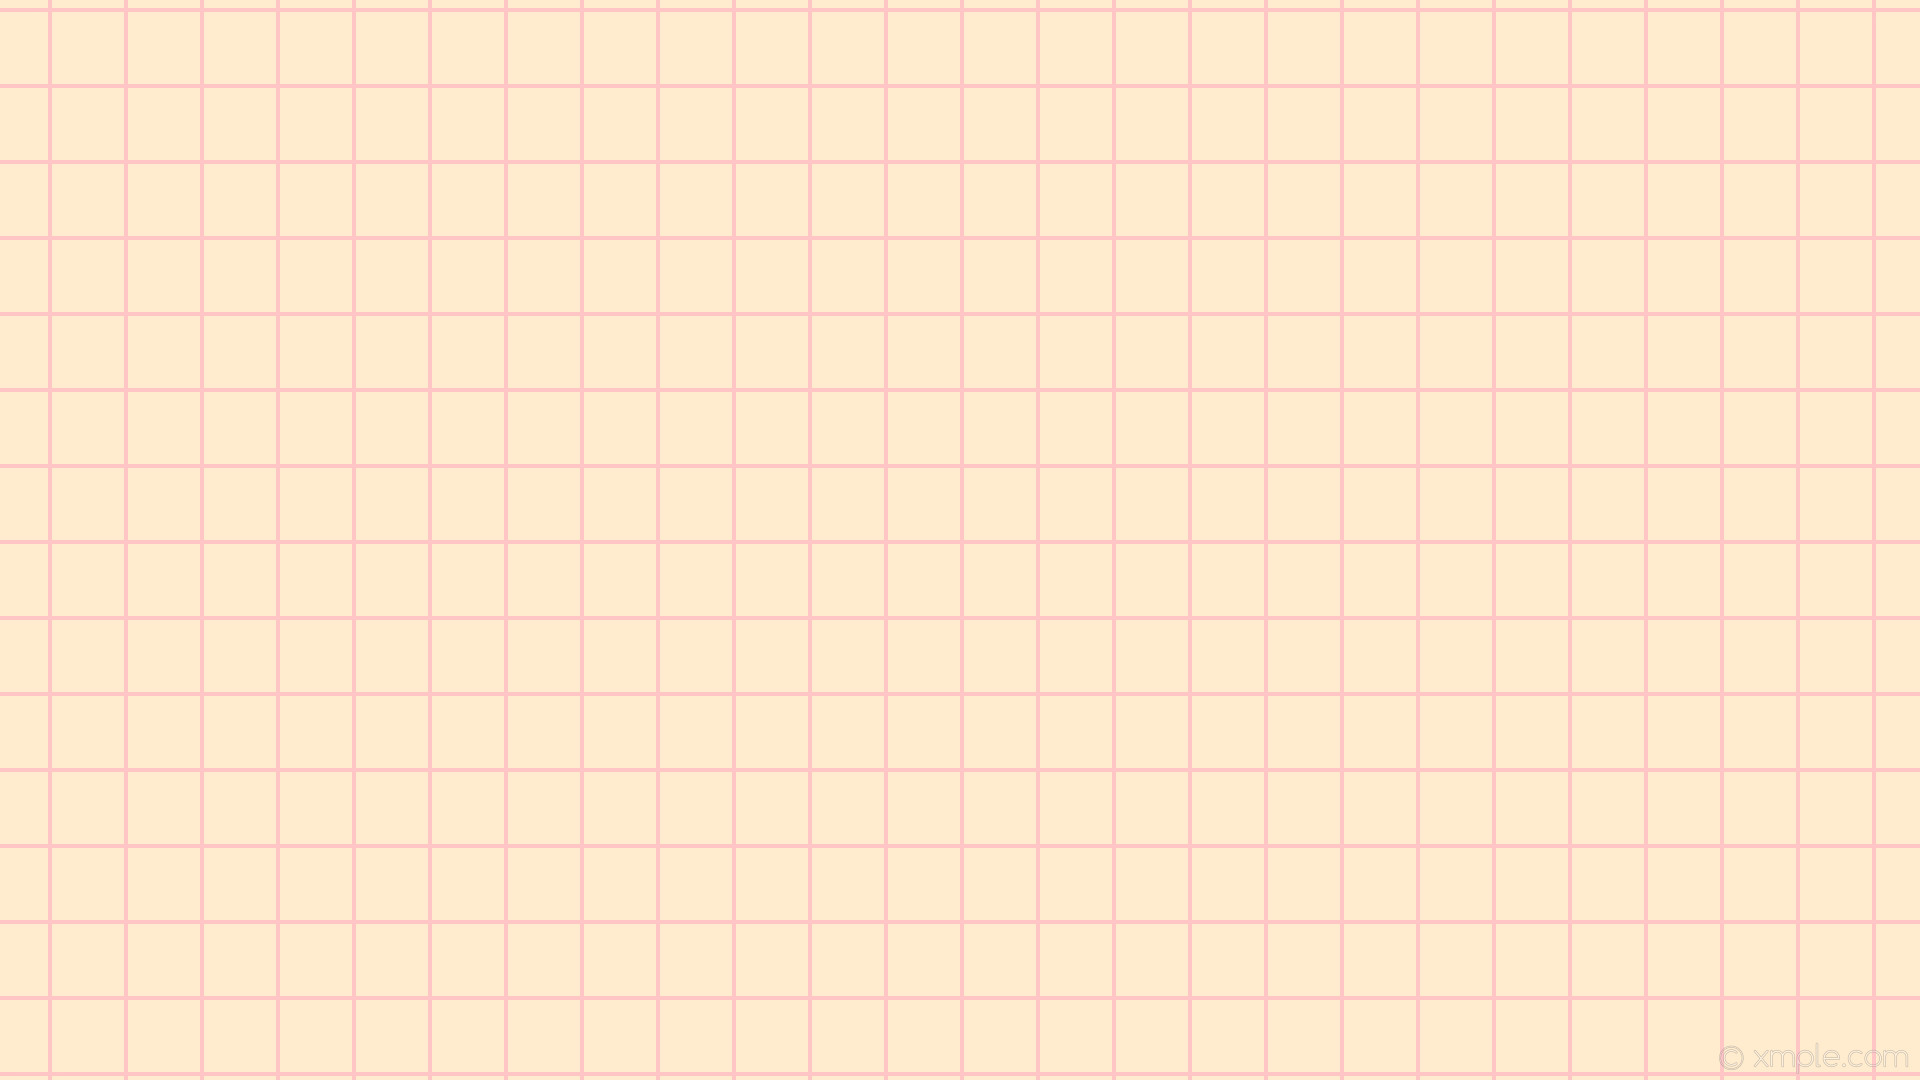 1920x1080 wallpaper graph paper pink grid brown blanched almond light pink #ffebcd  #ffb6c1 0°